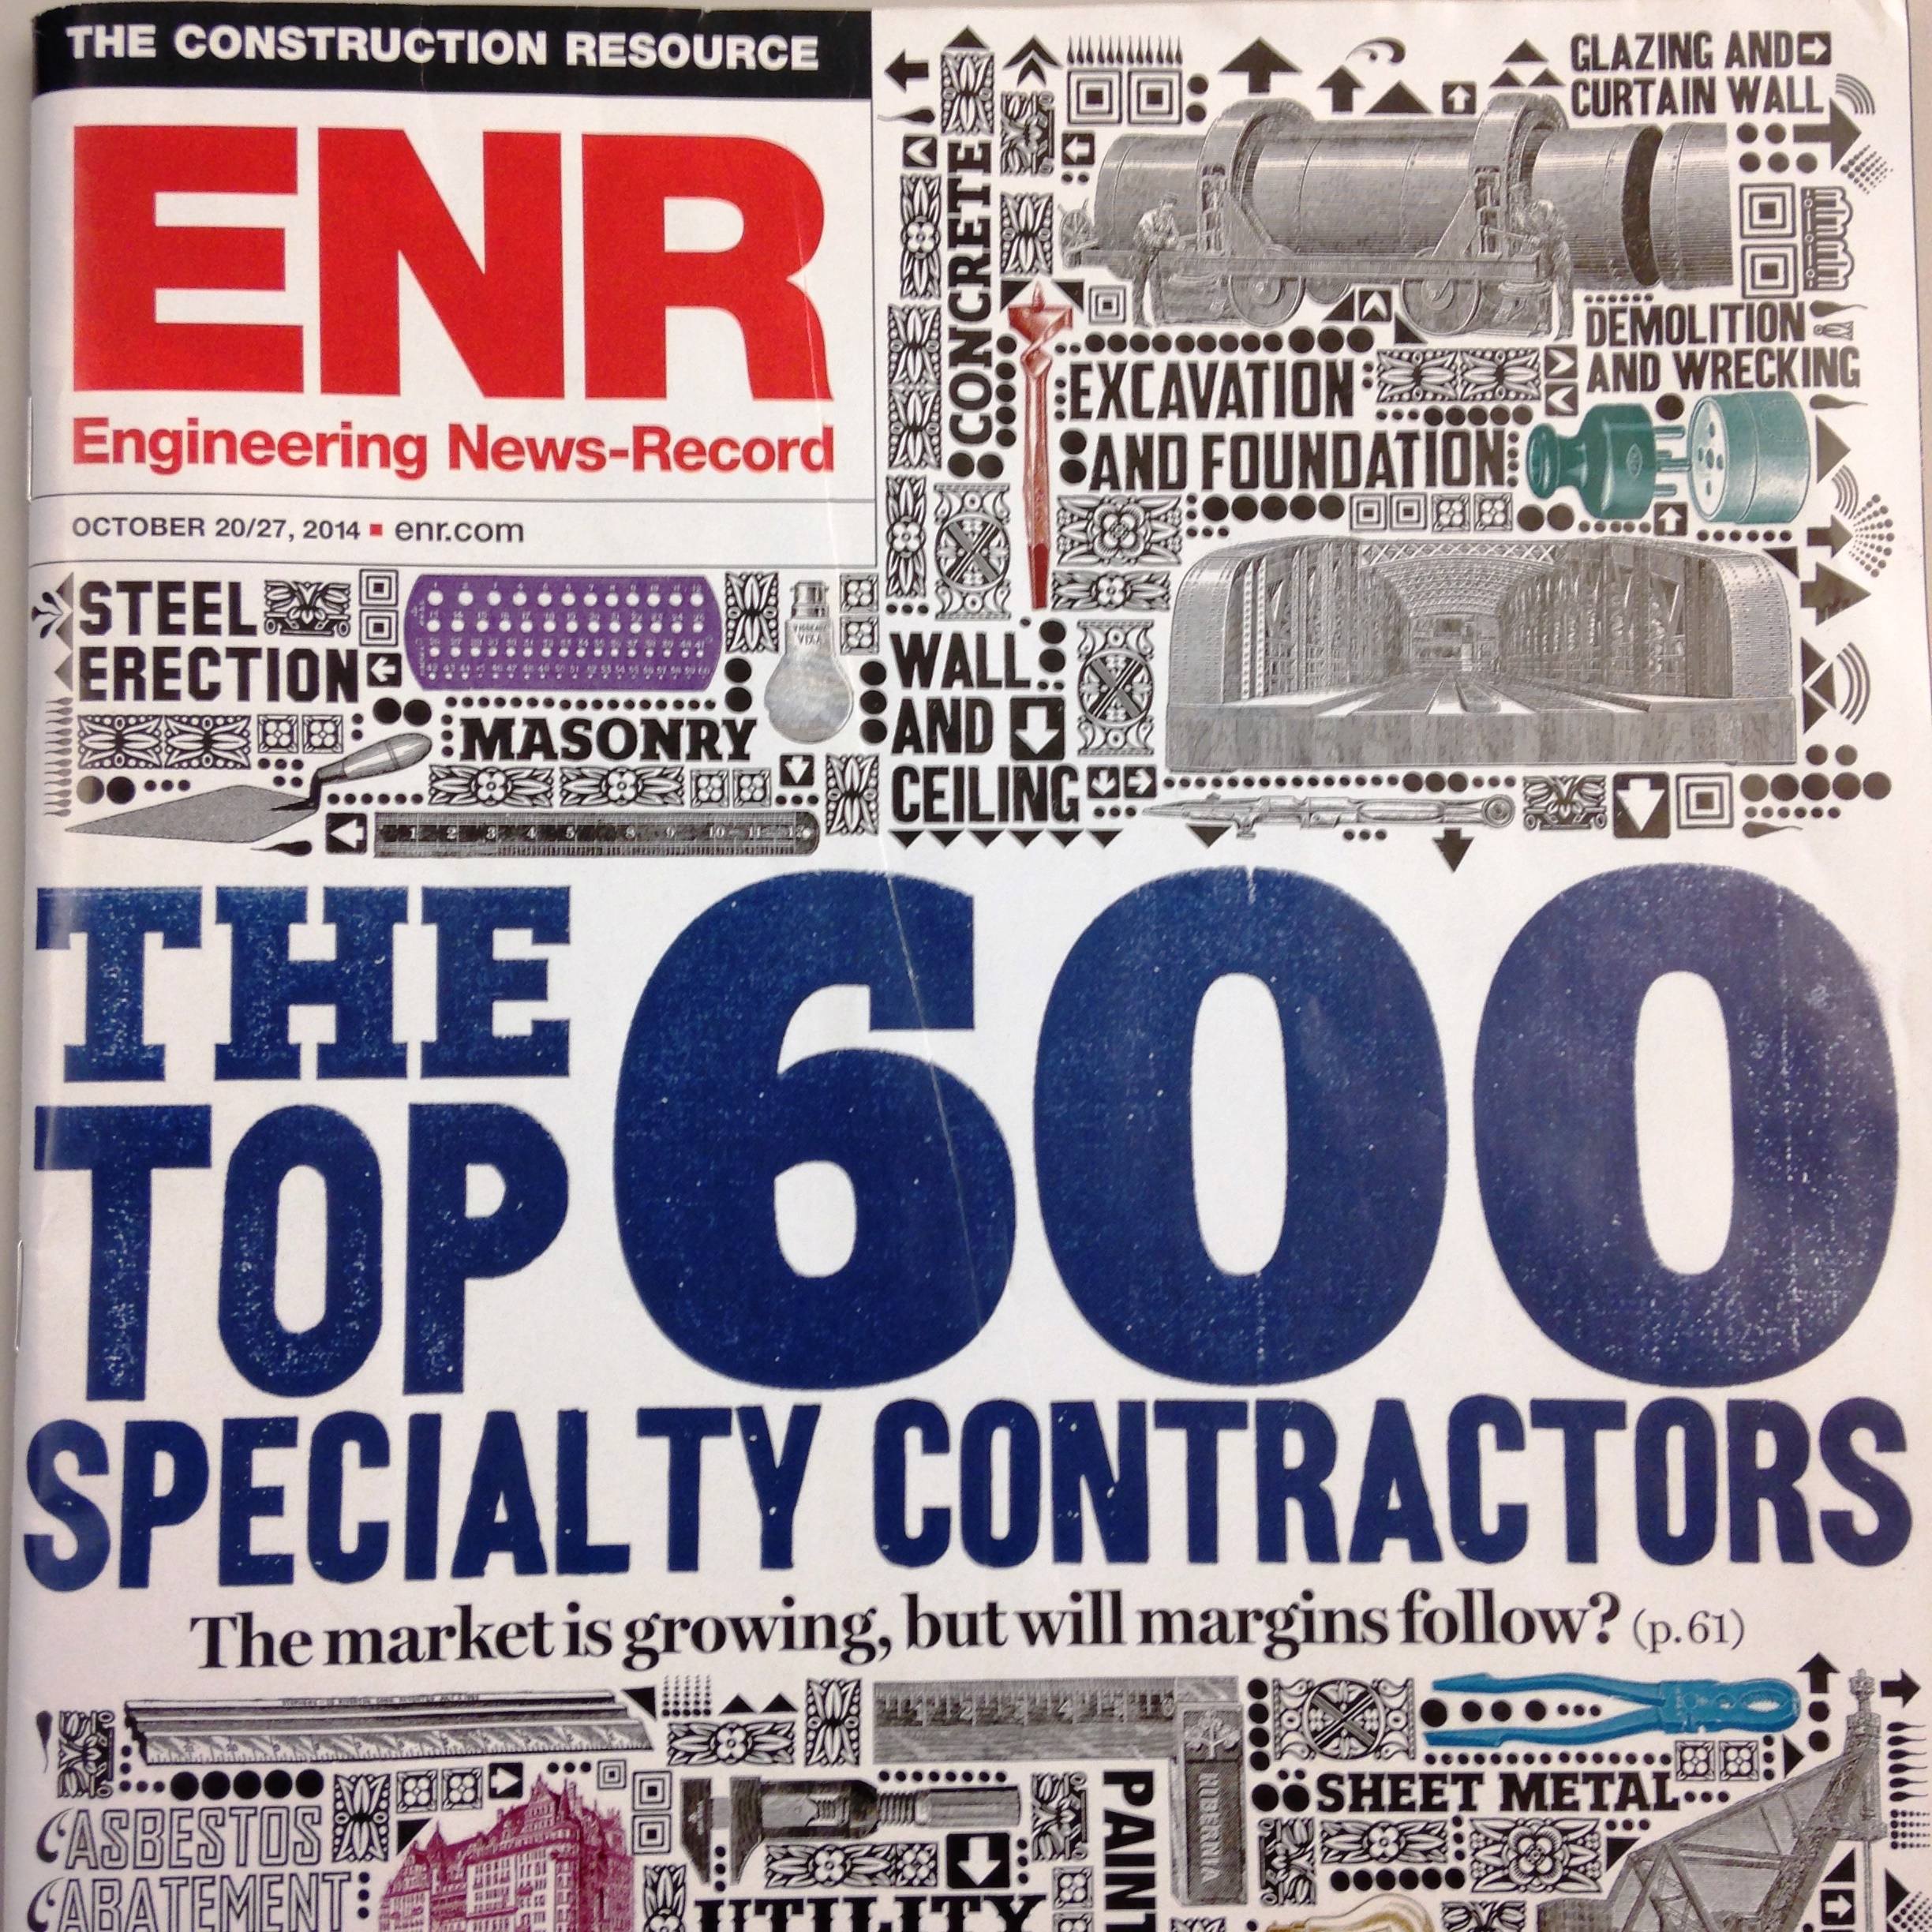 Nickle makes Top 600 Specialty Contractors list